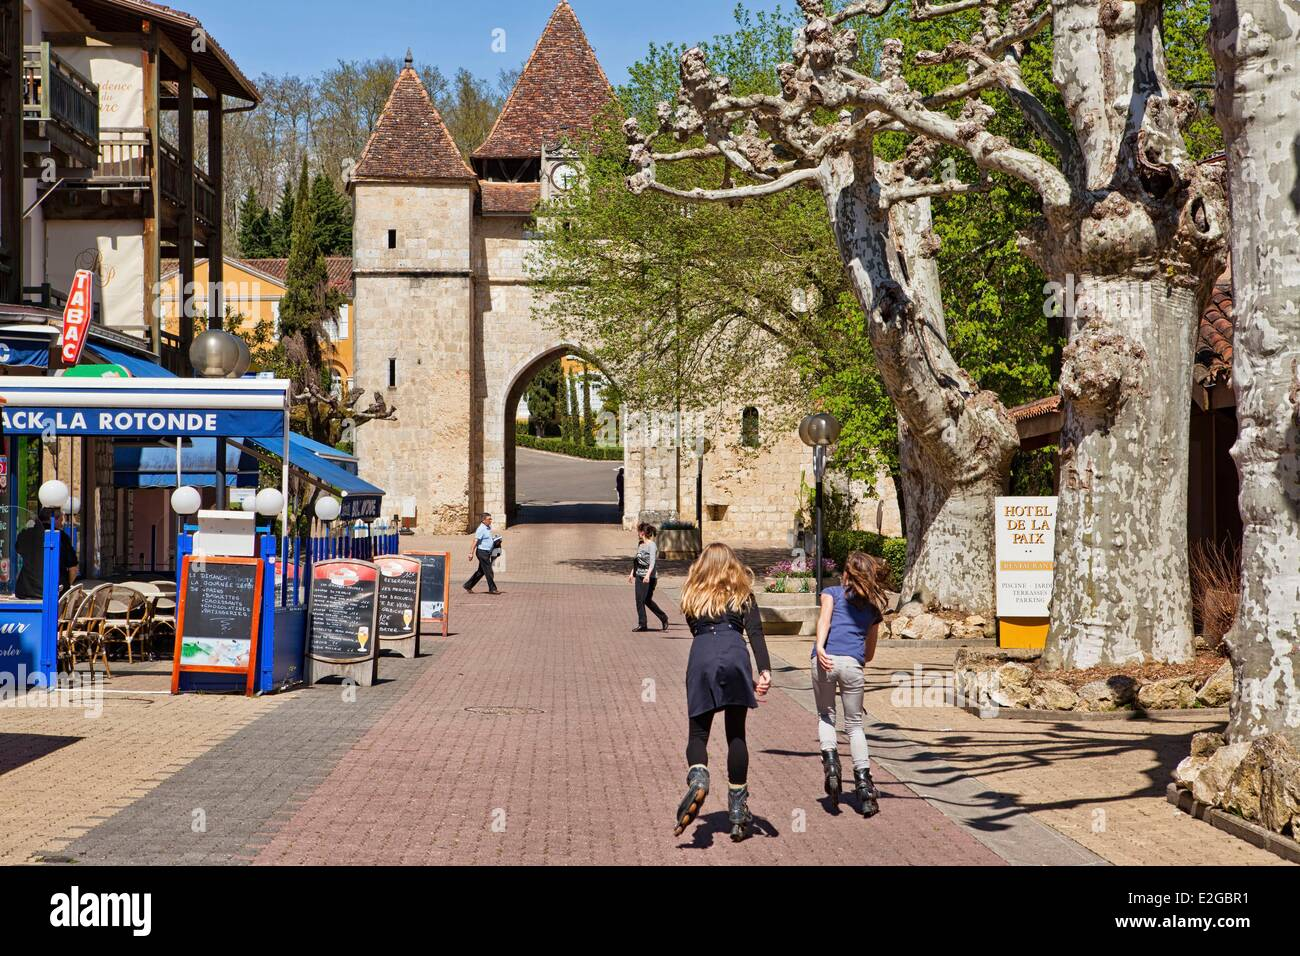 France Gers Barbotan Les Thermes Spa Stock Photo 70431285 Alamy